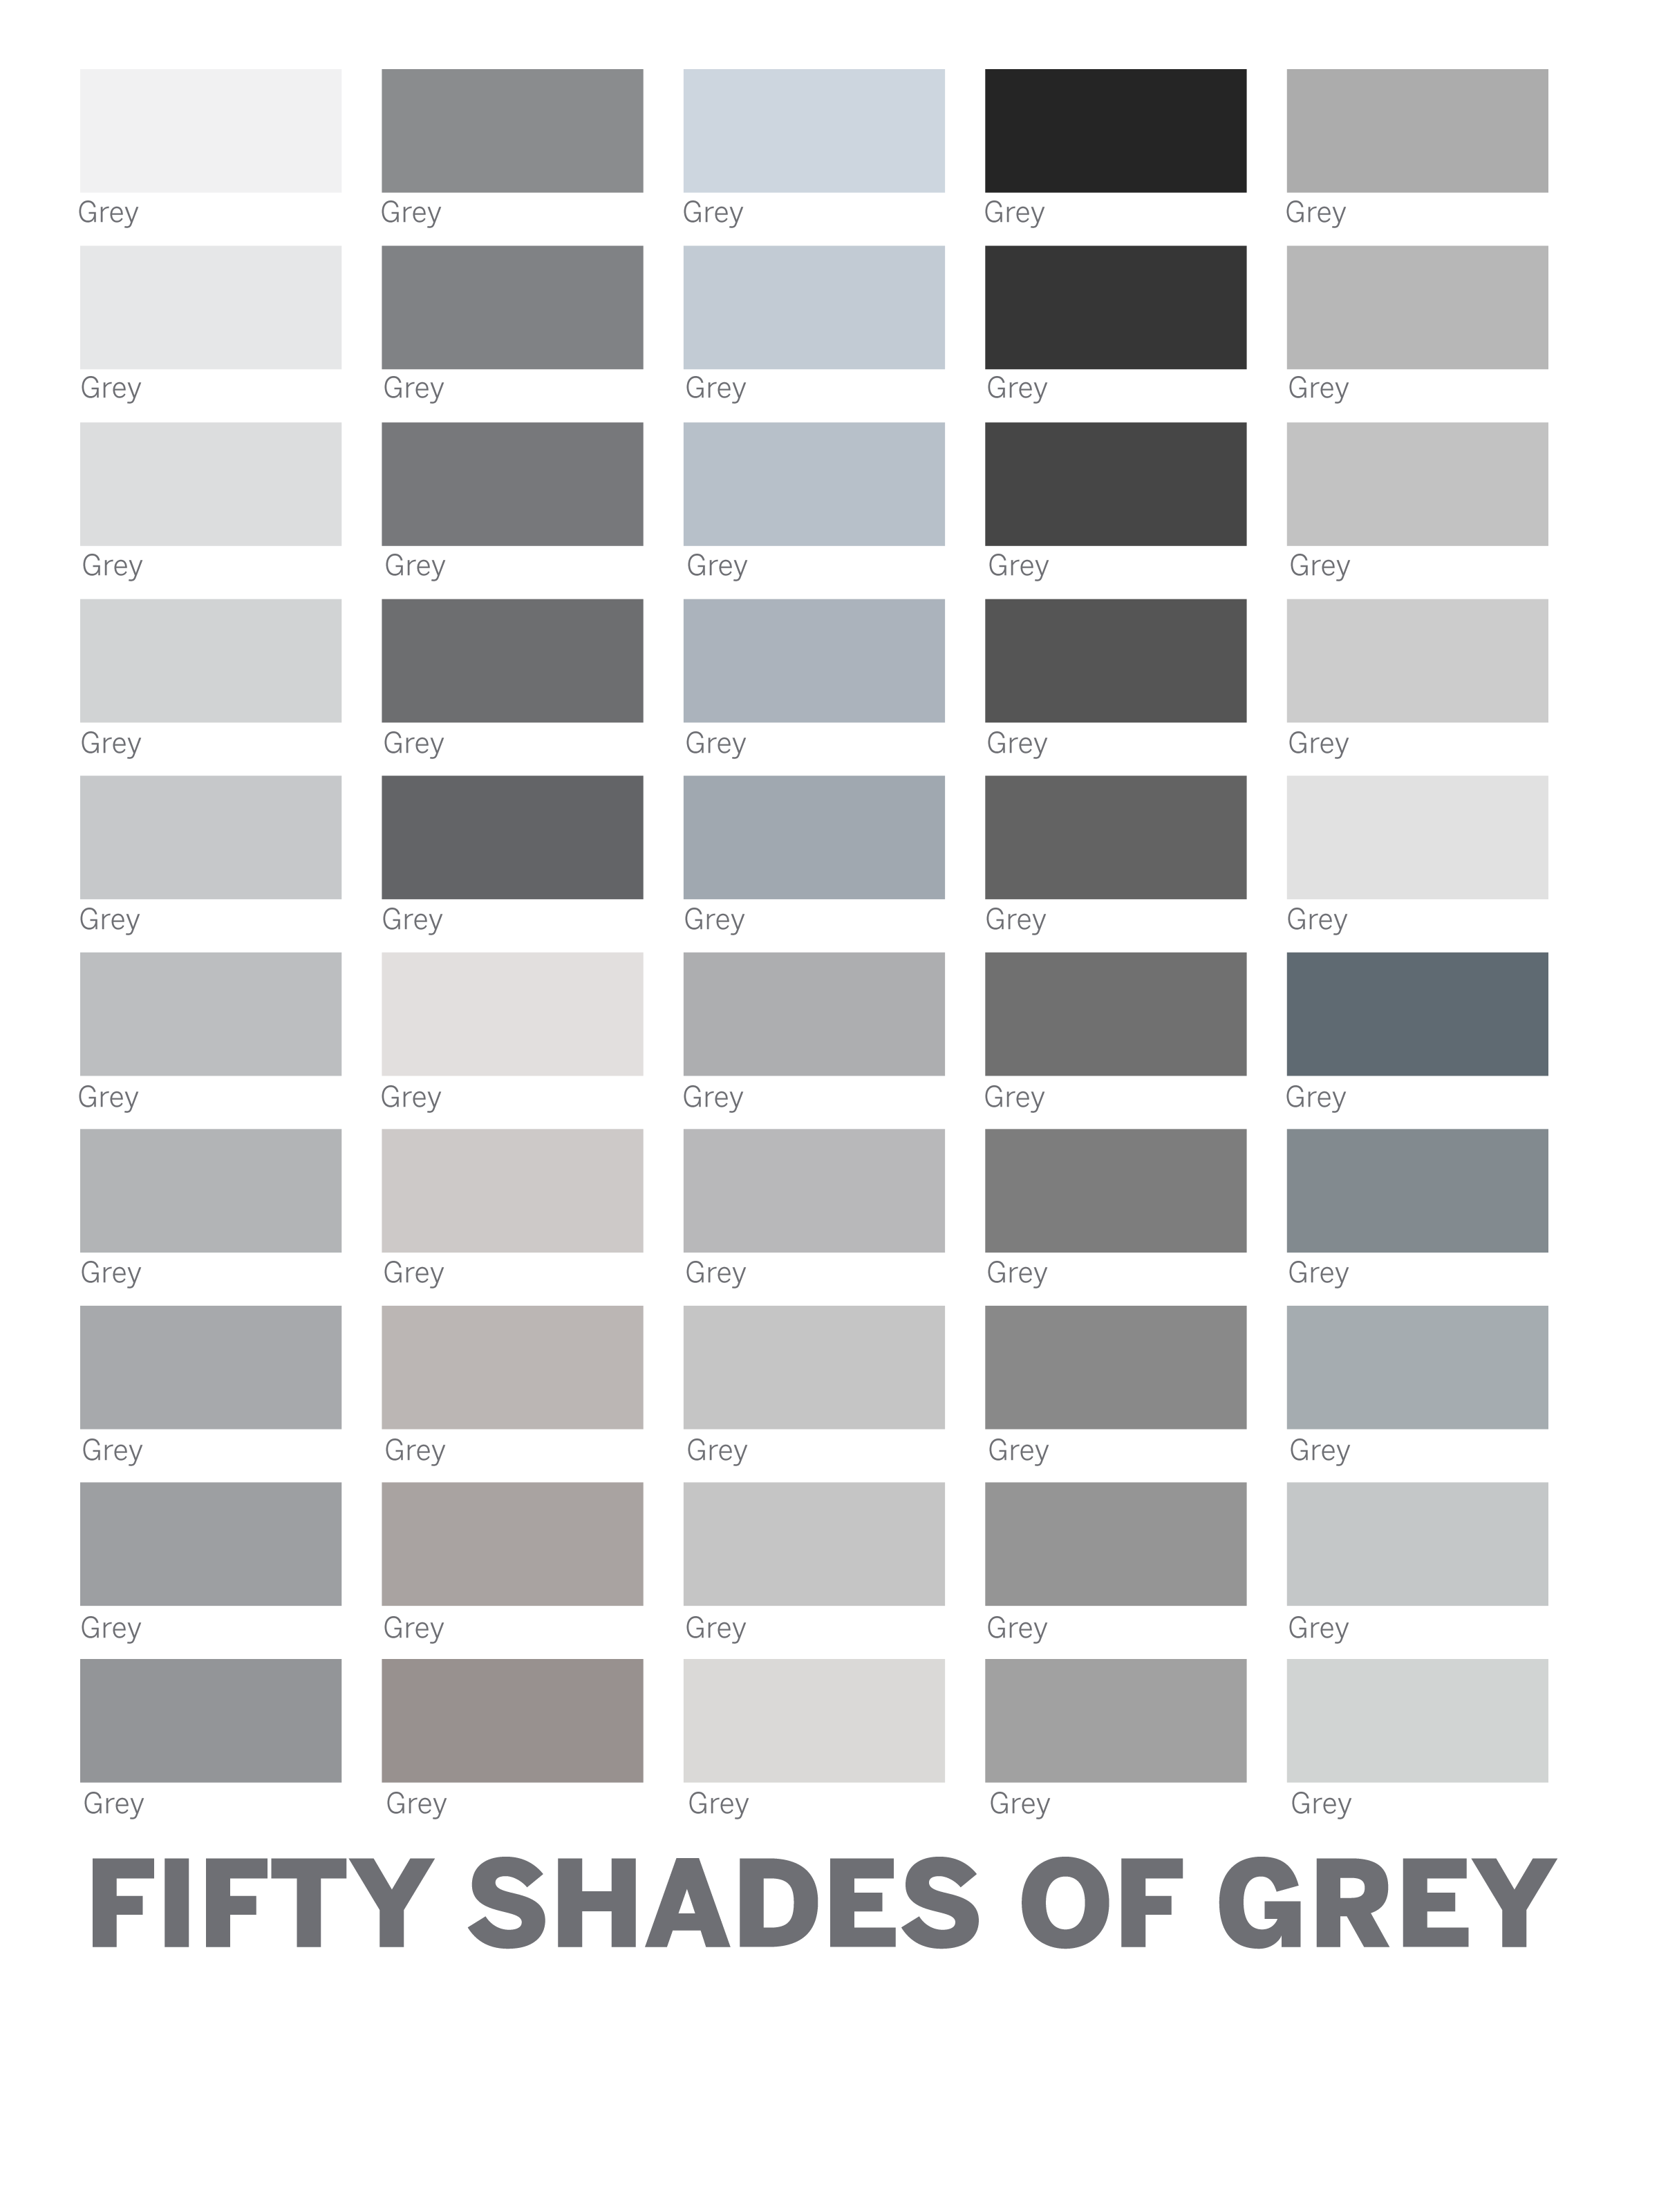 50 shades of gray paragraph